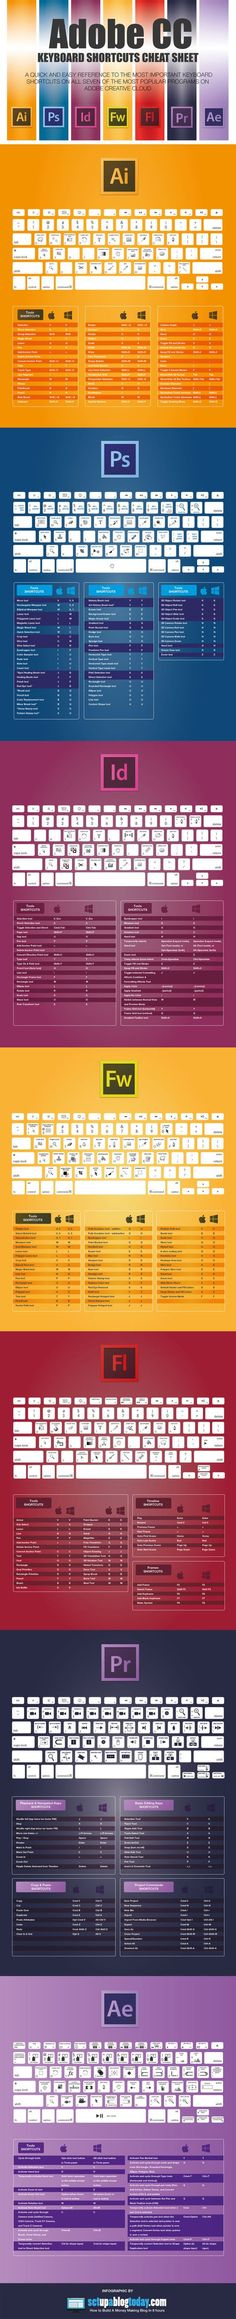 Learn All the Keyboard Shortcuts for Adobe Apps with This Cheat Sheet: